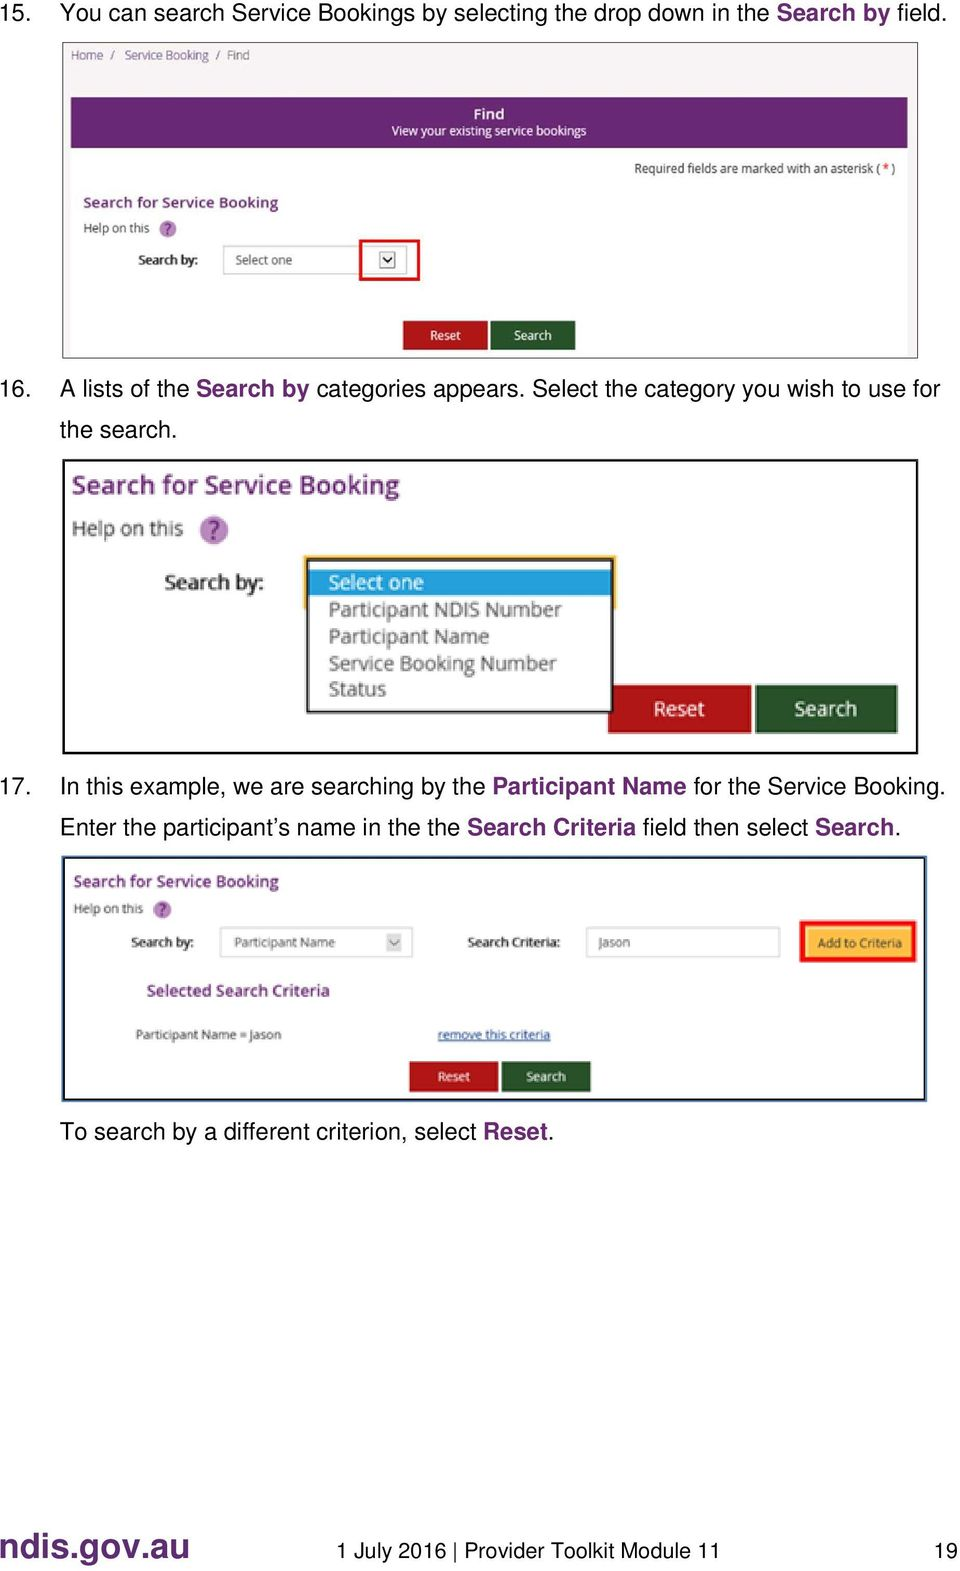 In this example, we are searching by the Participant Name for the Service Booking.